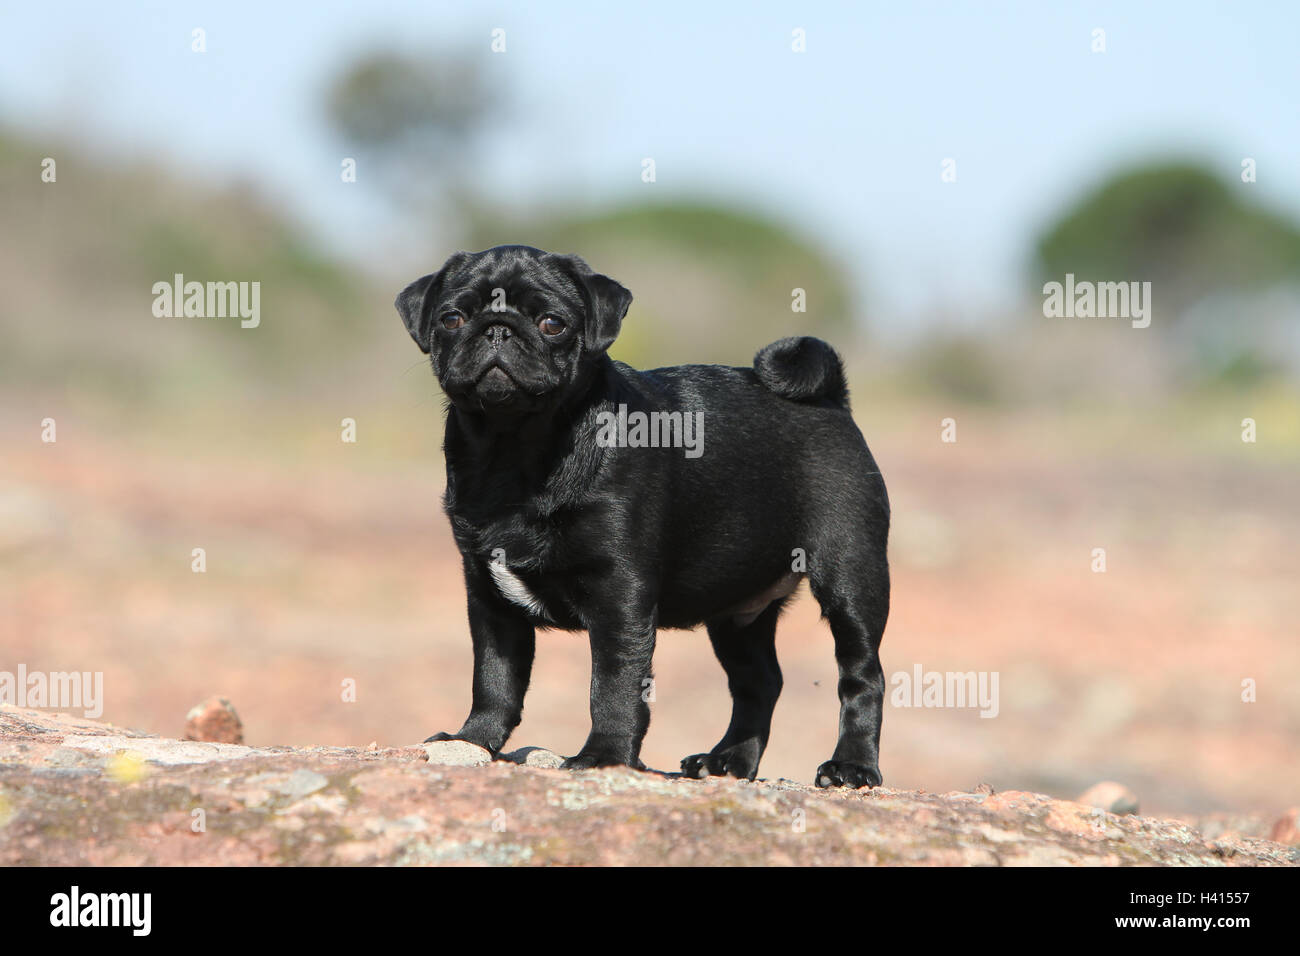 Dog Pug / Carlin / Mops standing profile standard rock in the wild blue sky - Stock Image